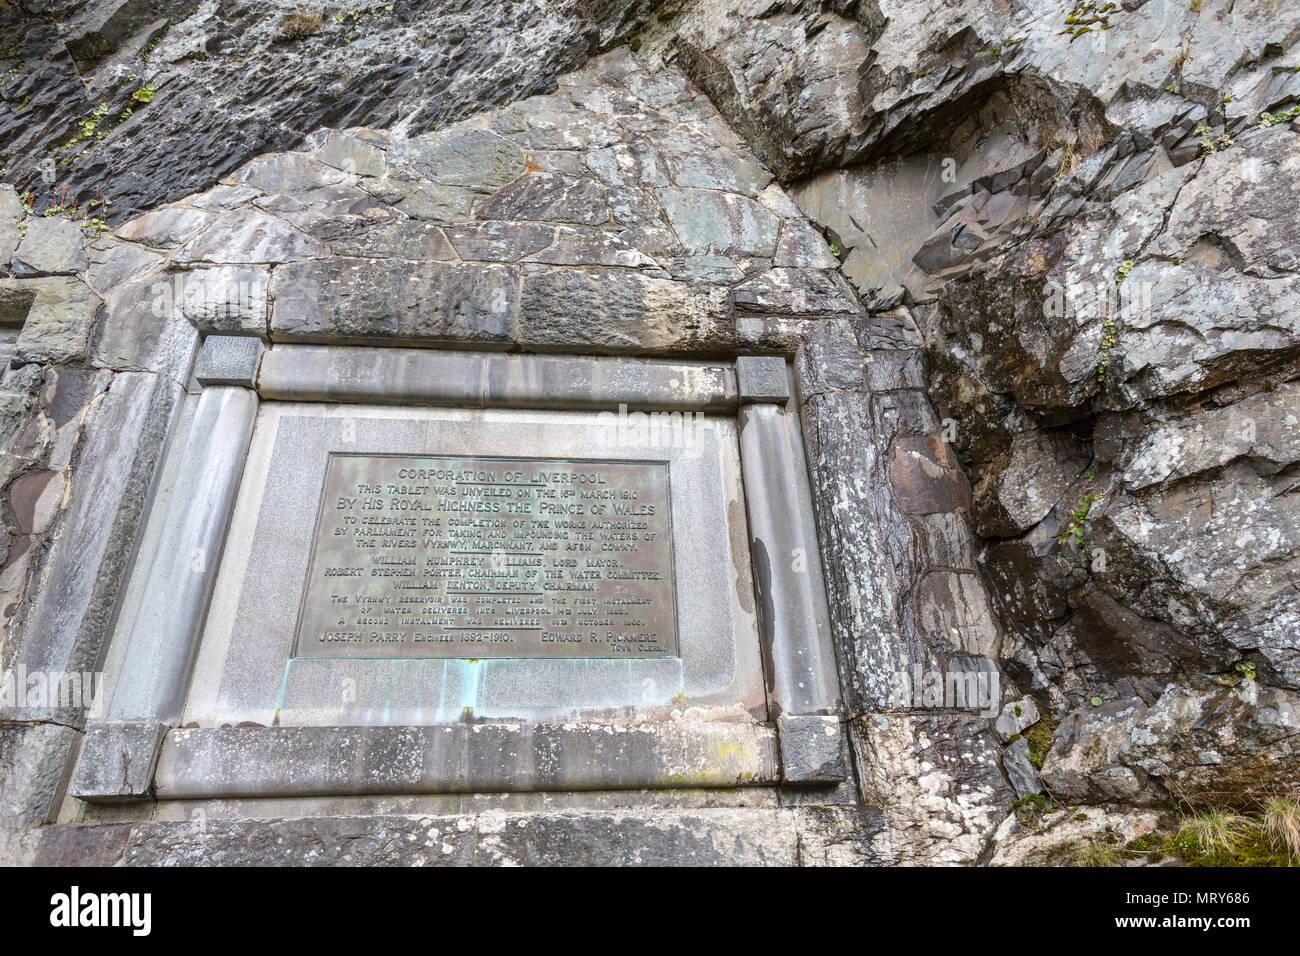 Iron tablet to commemorate the completion of the dam in Lake Vyrnwy, reservoir in Powys, Wales, UK - Stock Image